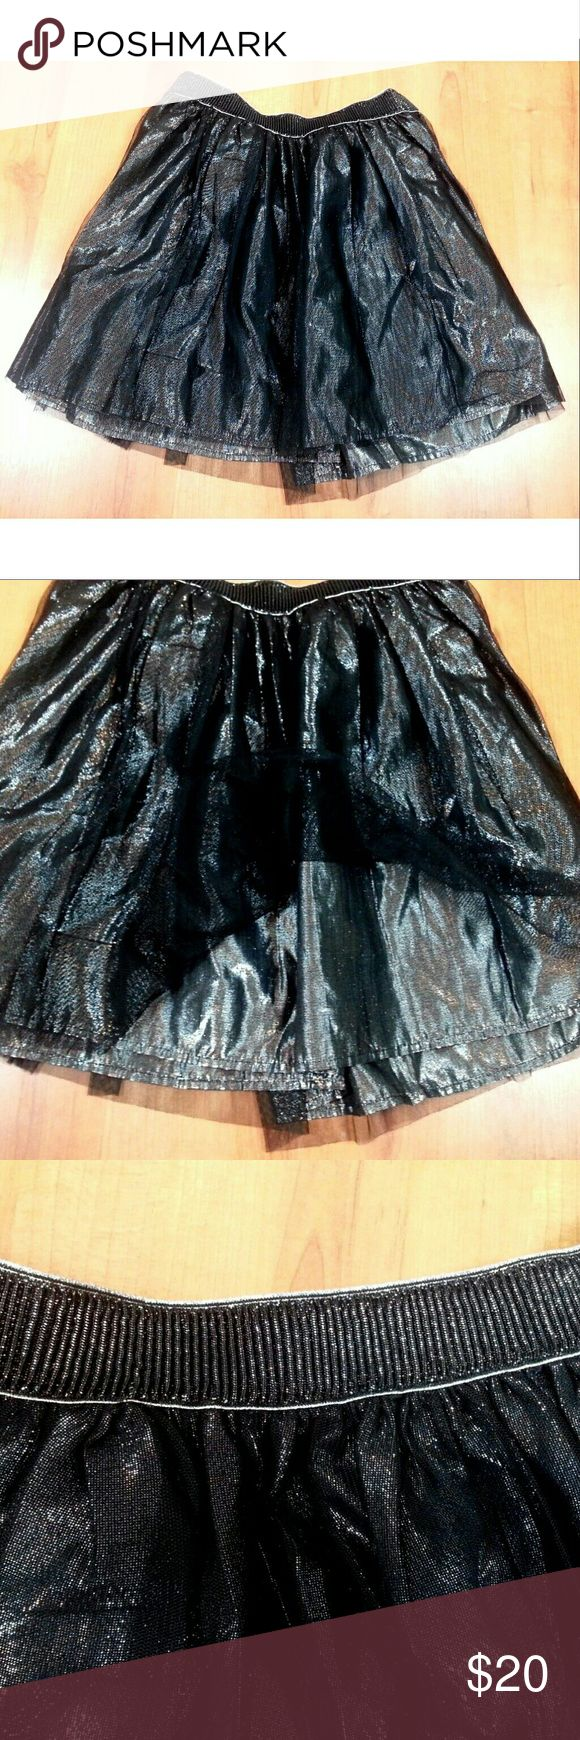 "Decree metallic liquid shimmer mini skirt Sequins have a matte effect Has zipper in back Fully lined  Waist: 15"" across front (30"" around). No stretch or give. Length: 16"" Decree Skirts Mini"